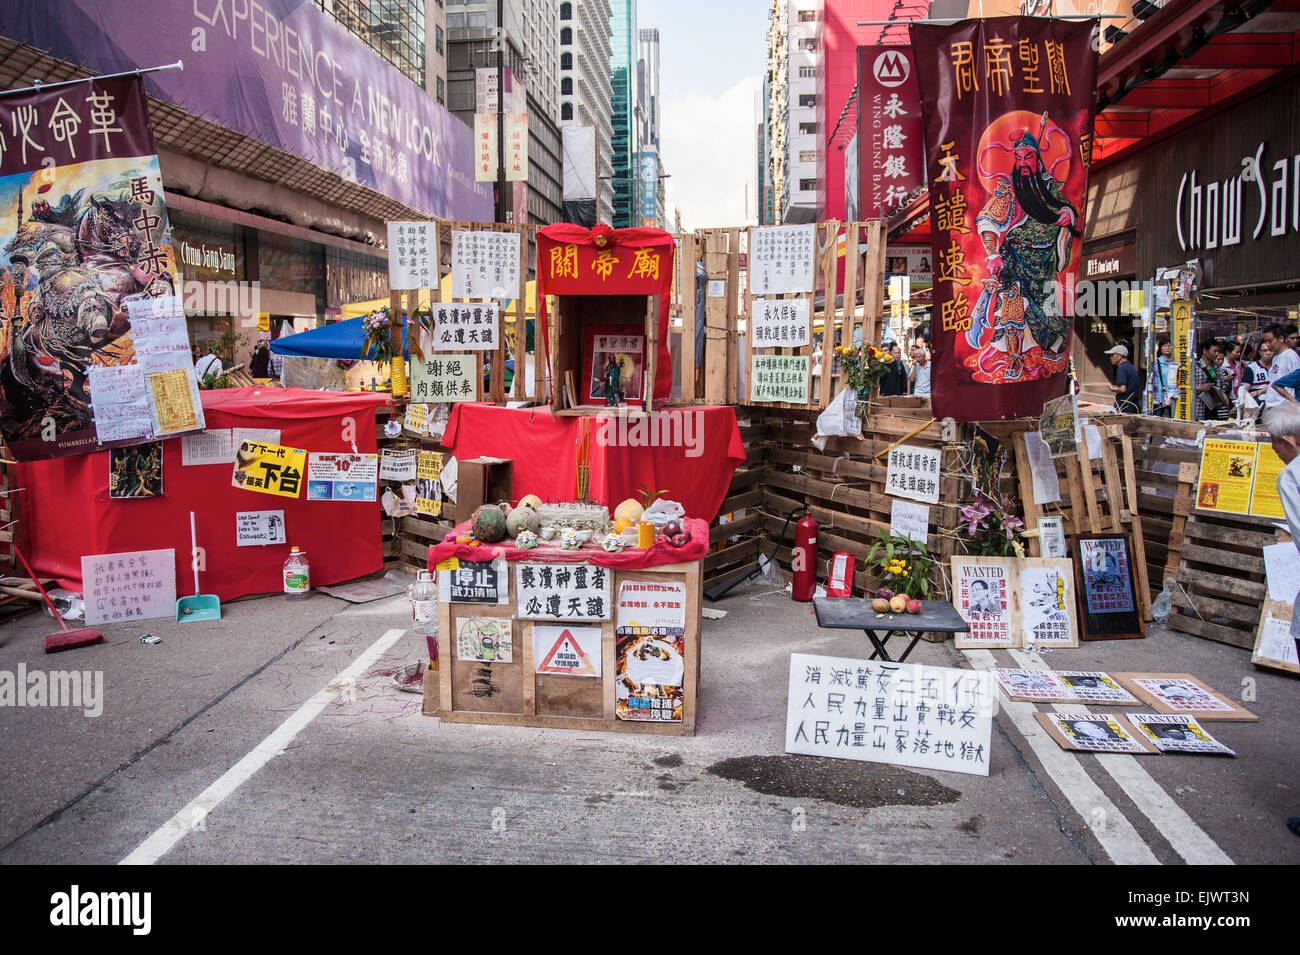 Universal suffrage or the umbrella movement occupied several of the main areas of Hong Kong. - Stock Image